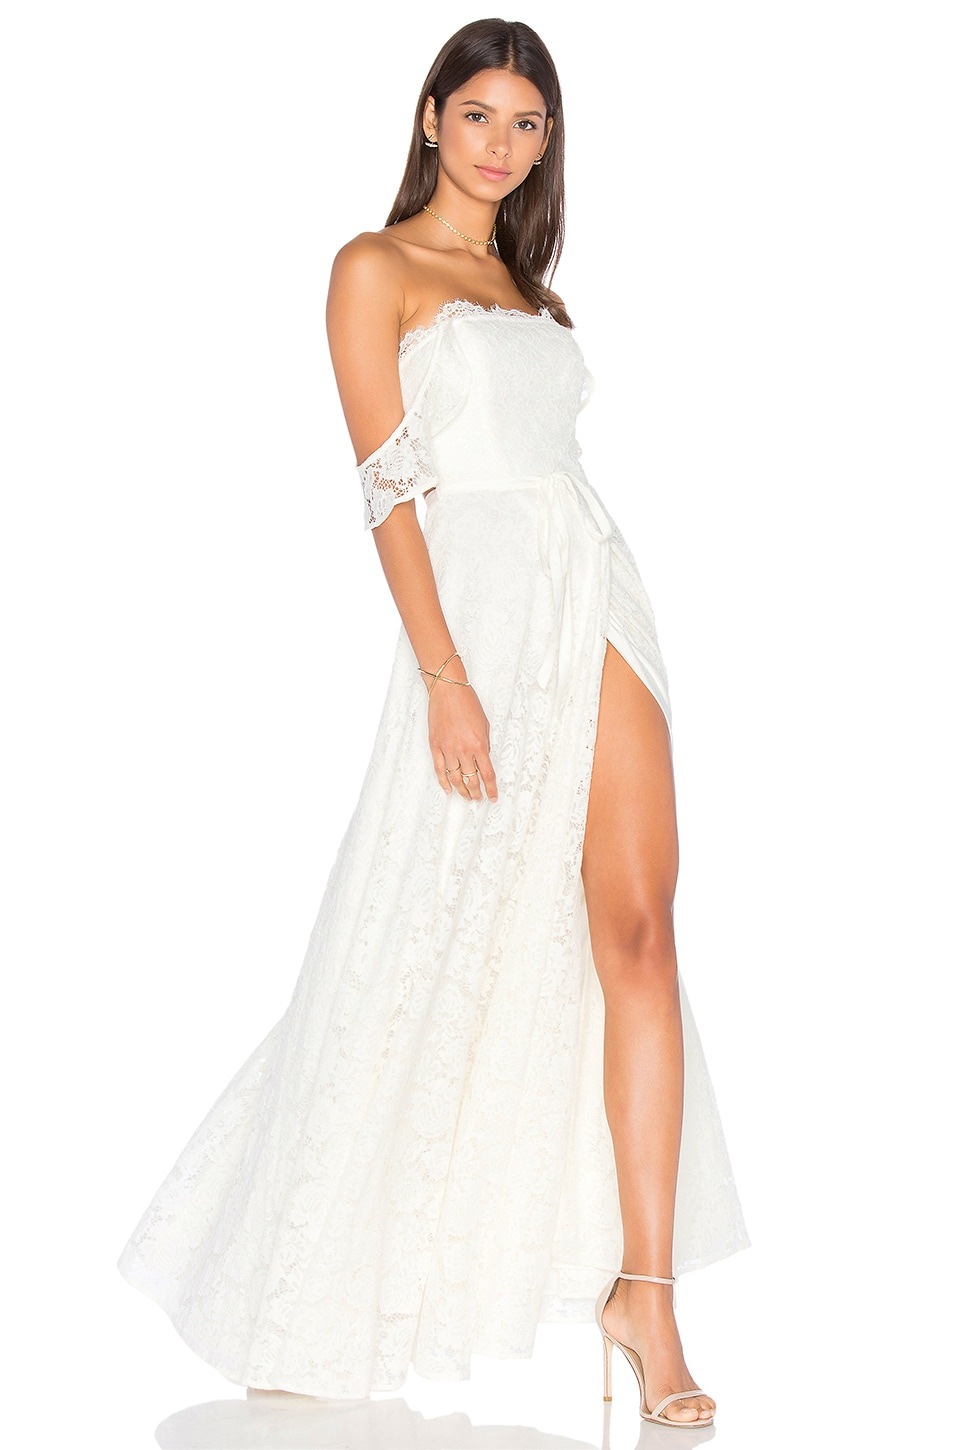 Lovers + Friends x REVOLVE Vienna Gown in White